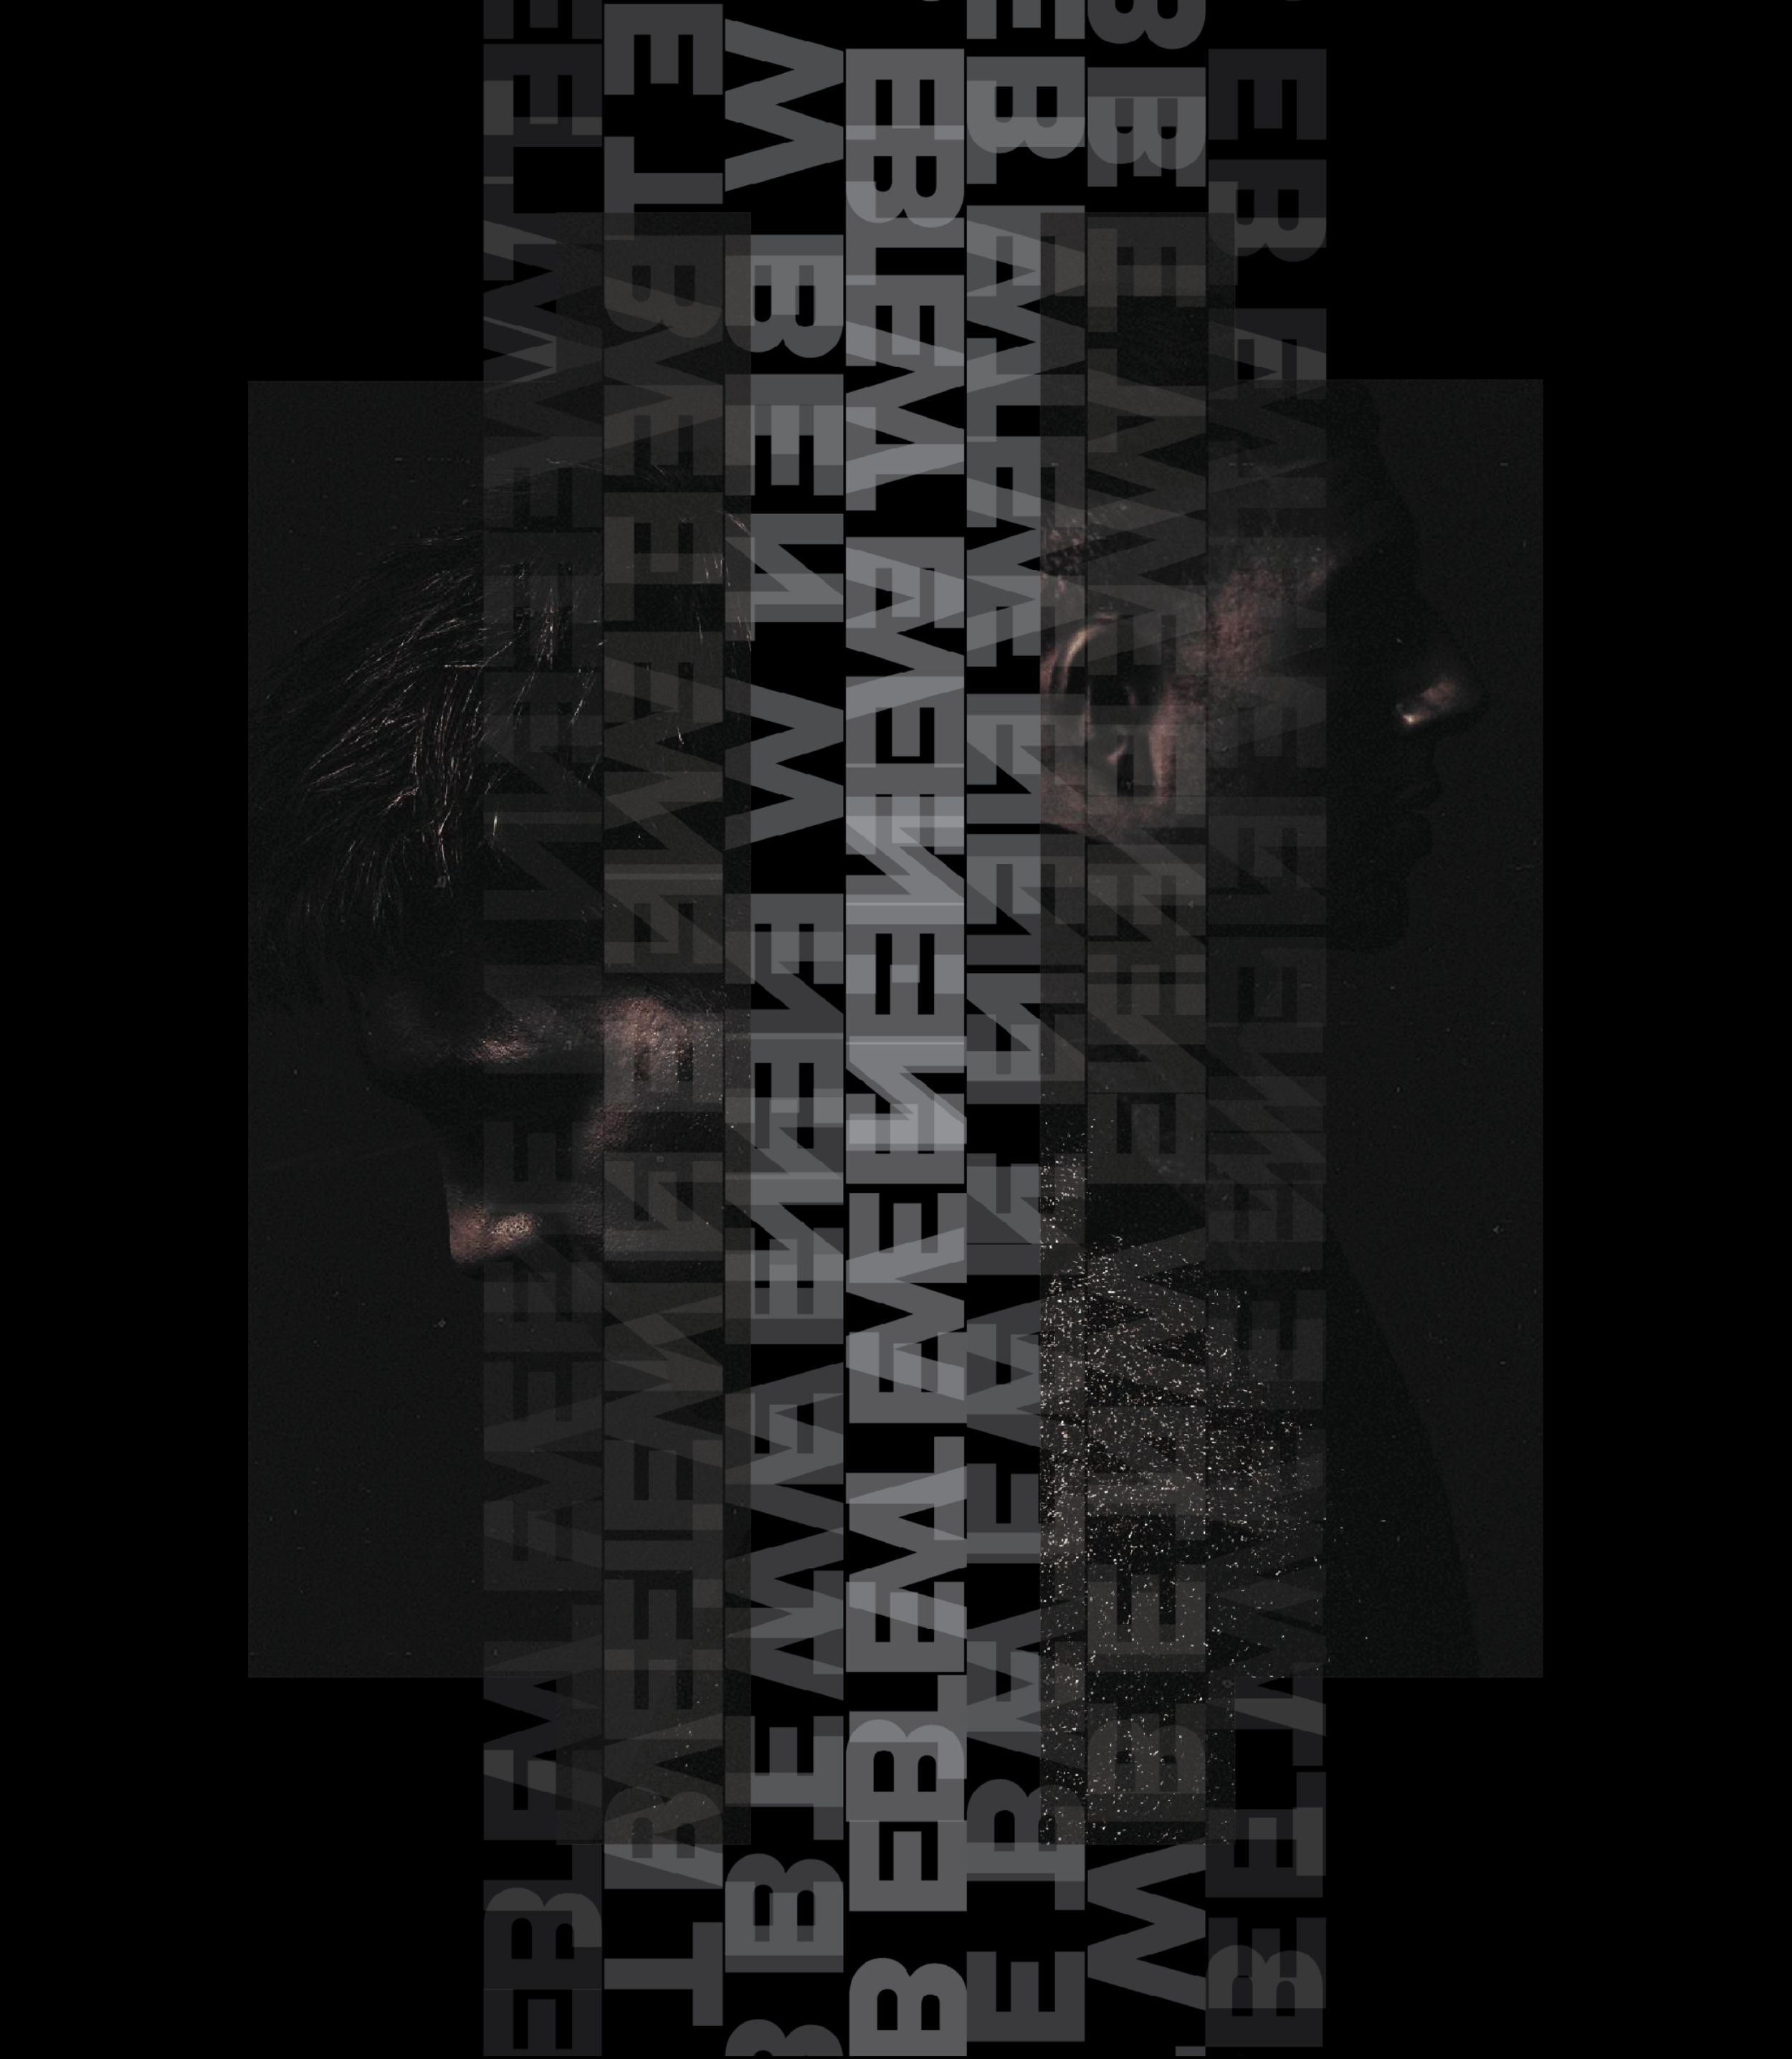 """- A graphic design inspired by Majid Jordan's most recent album """"A Space Between"""". This project involved various types of text manipulation, going through multiple iterations."""